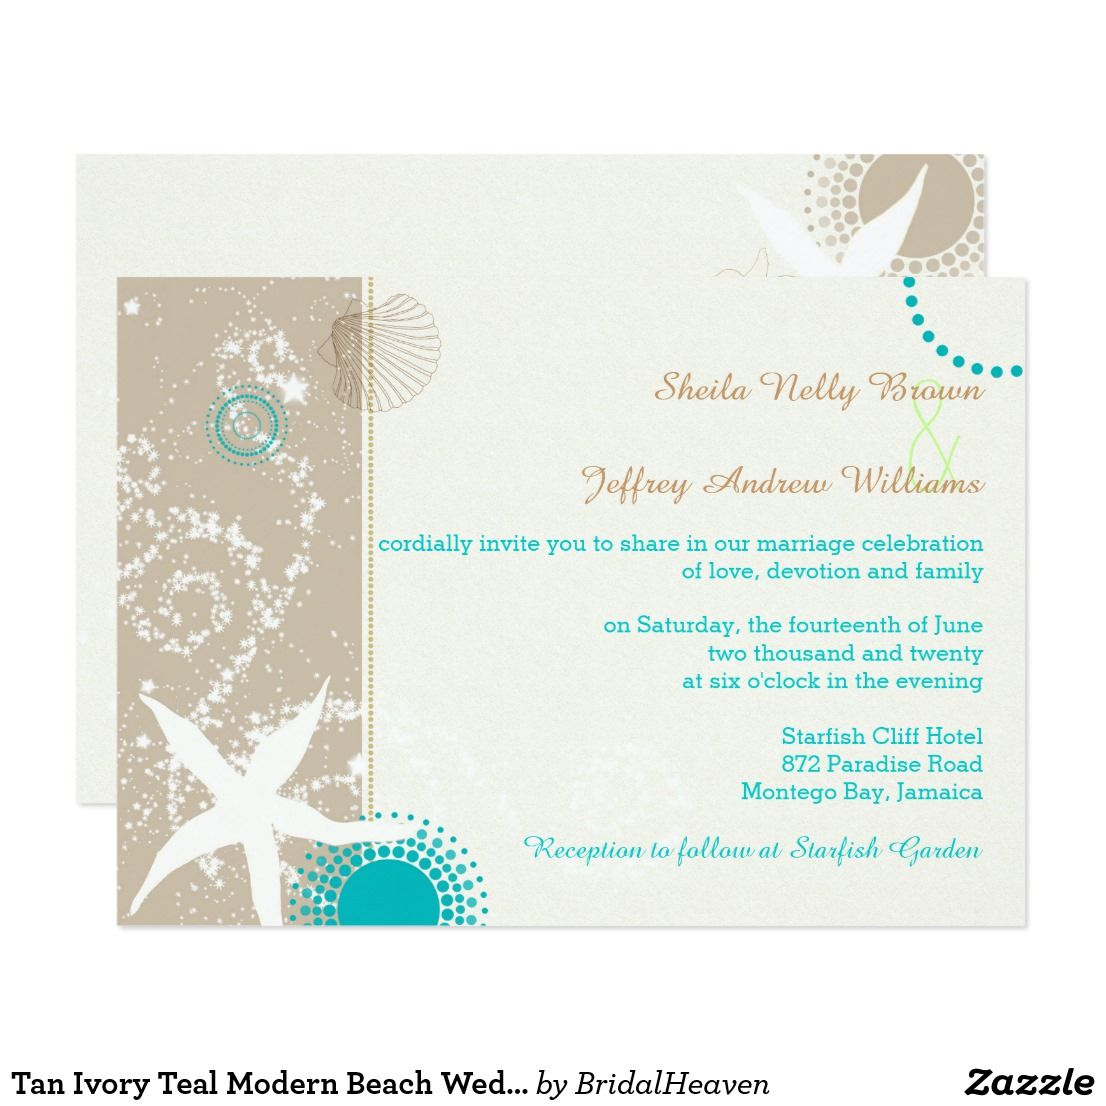 Tan Ivory Teal Modern Beach Wedding Card Simple & modern ...